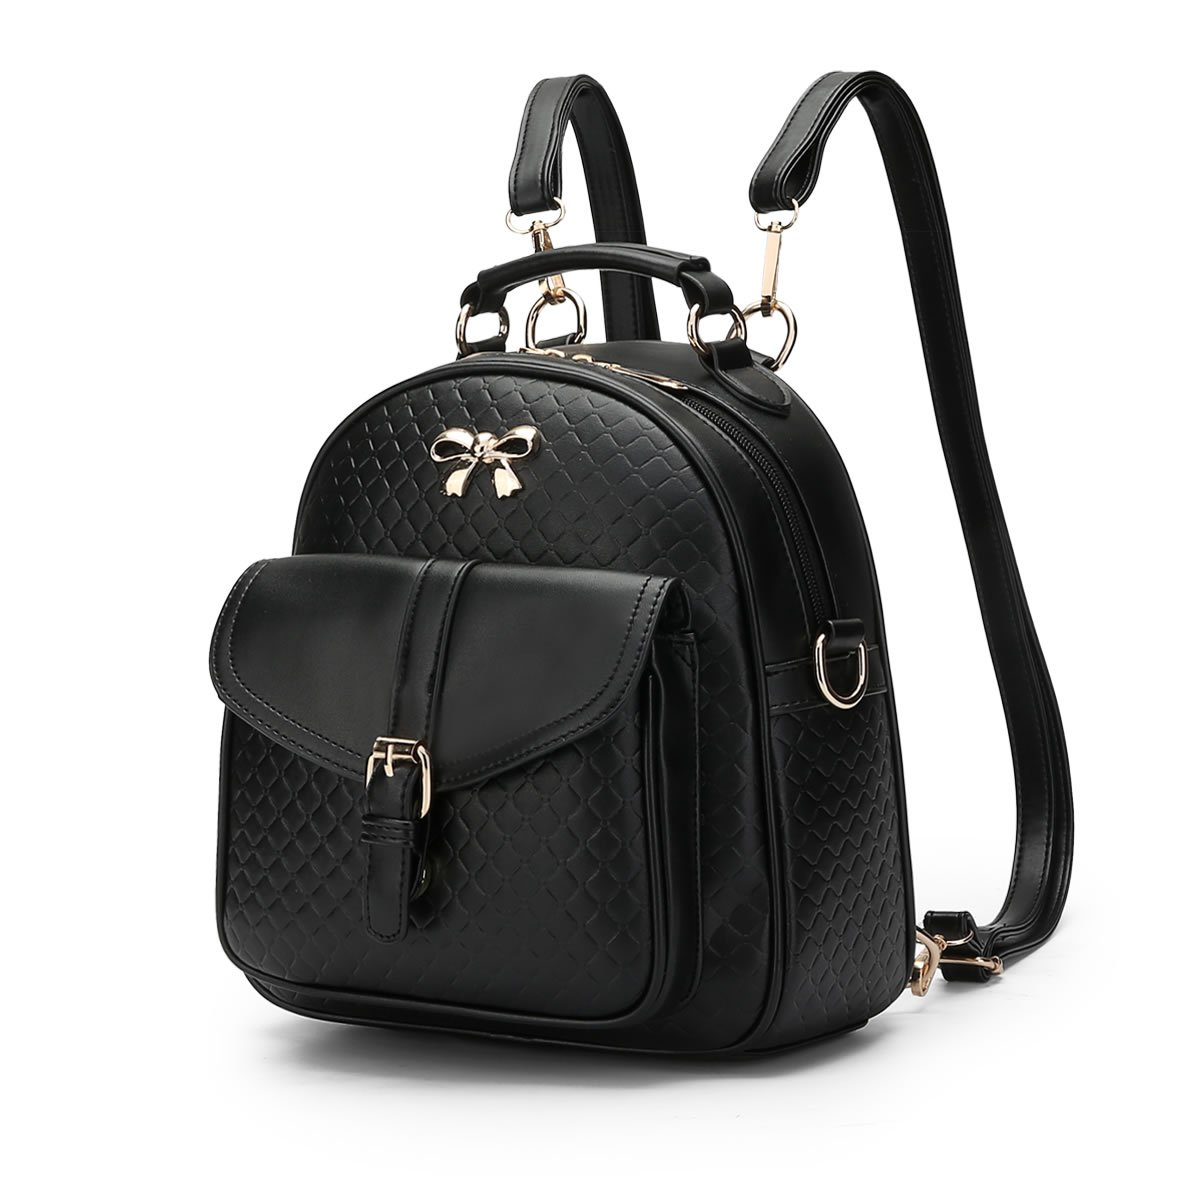 MSZYZ Women's shoulder bag spring and summer young girl's small backpack,black,24.51026CM